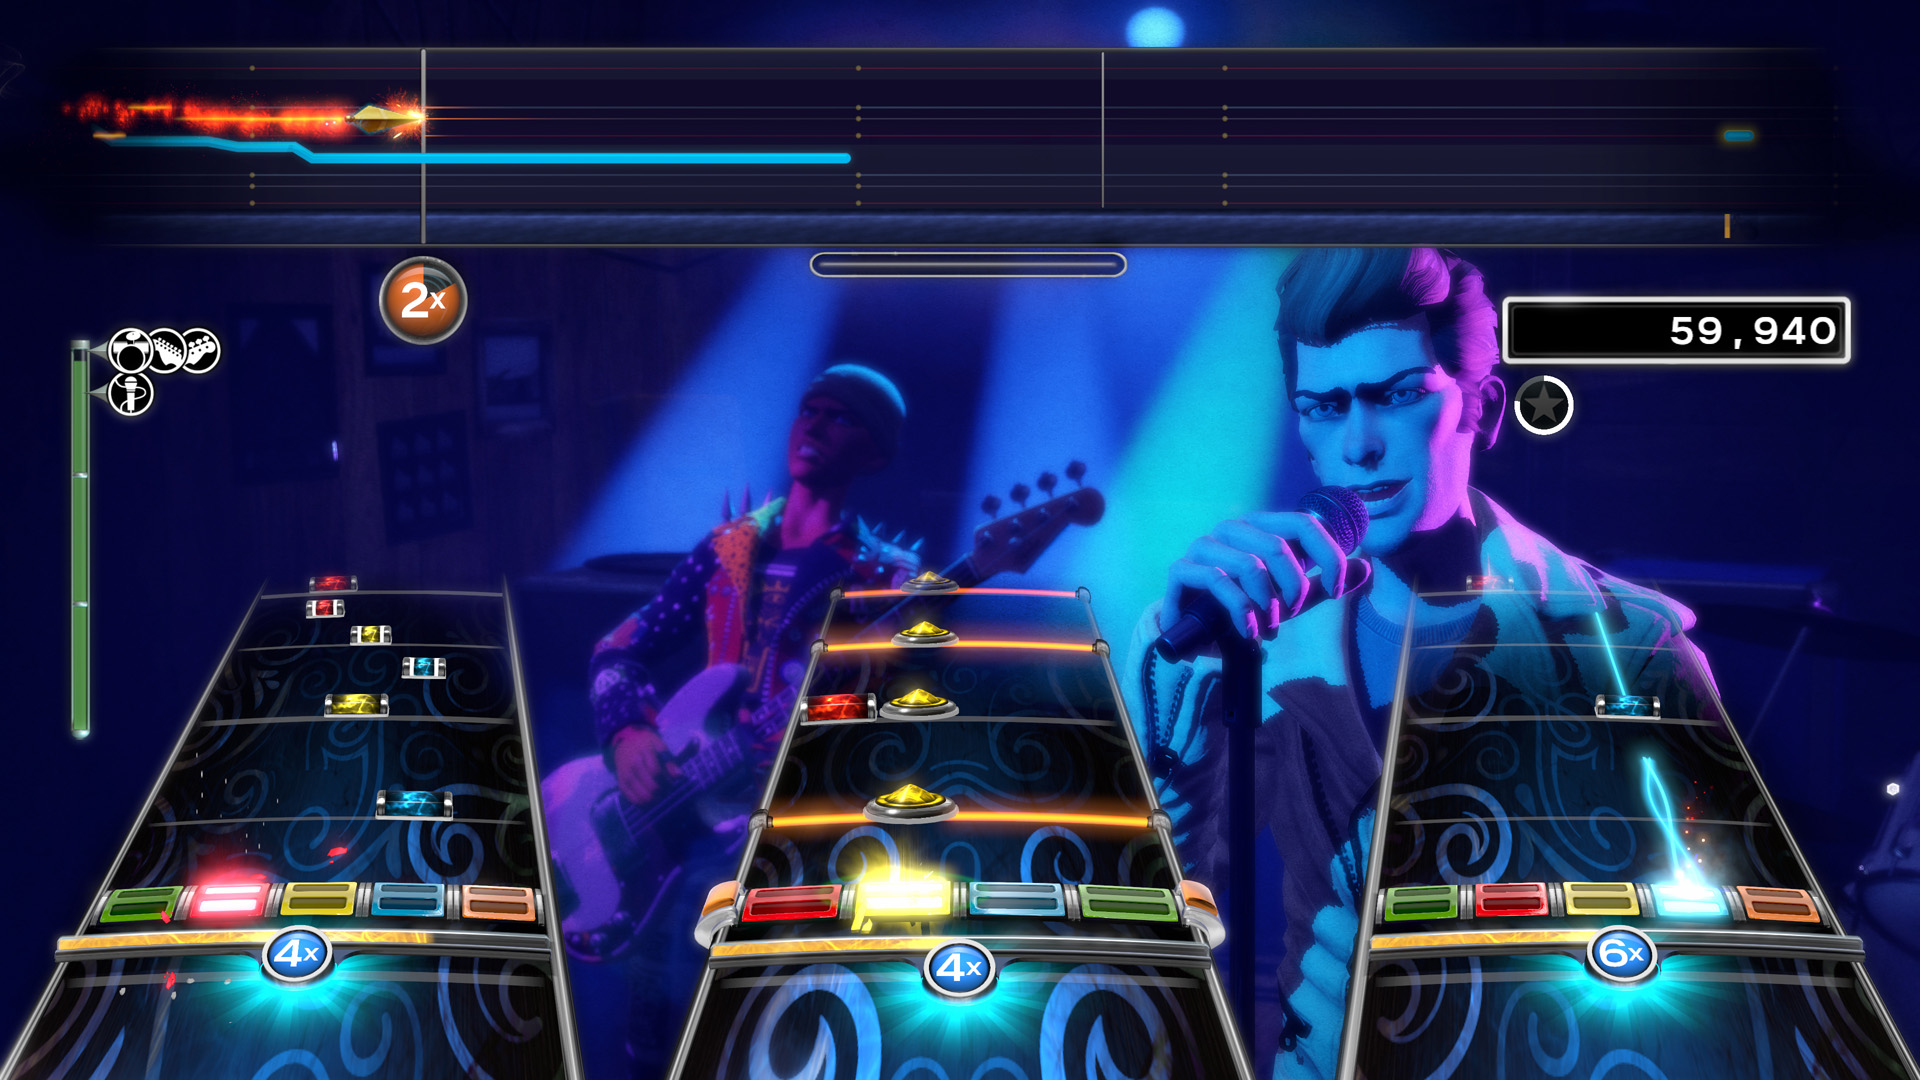 Export your Rock Band 3 Tracks to 4 in December | USgamer